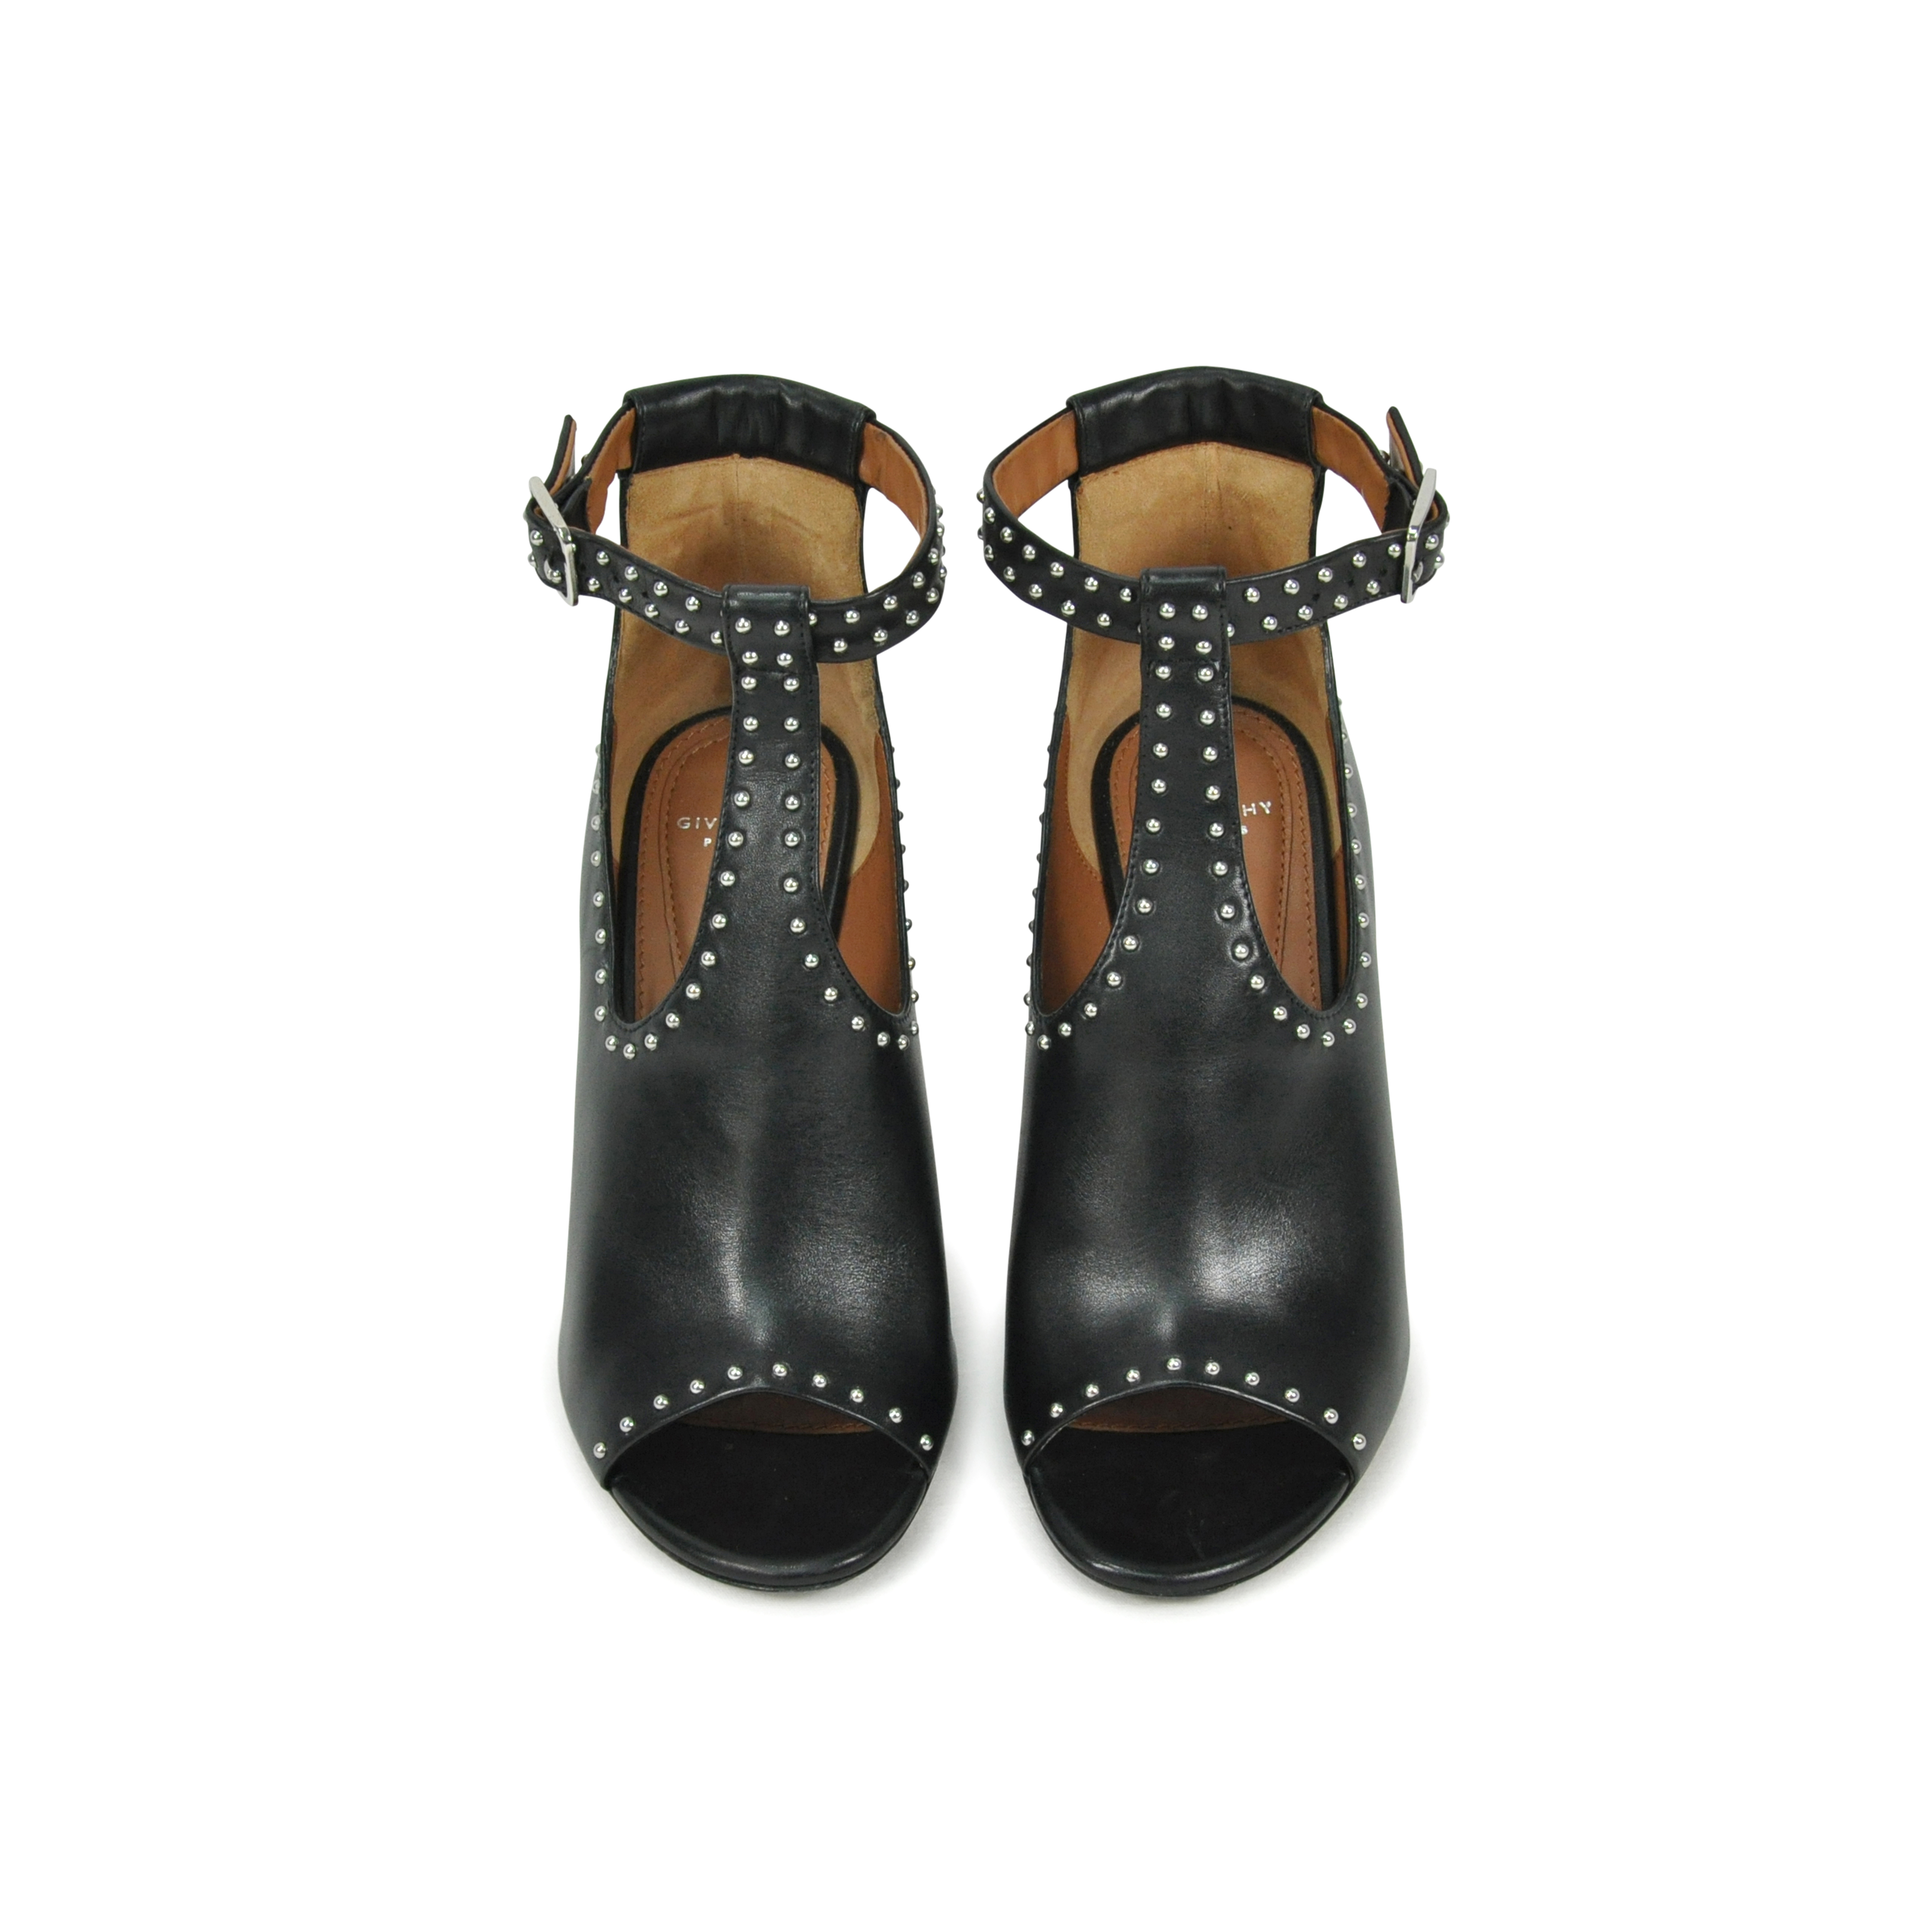 e12182f0cfd Authentic Second Hand Givenchy Pisca Studded Heels (PSS-143-00086 ...